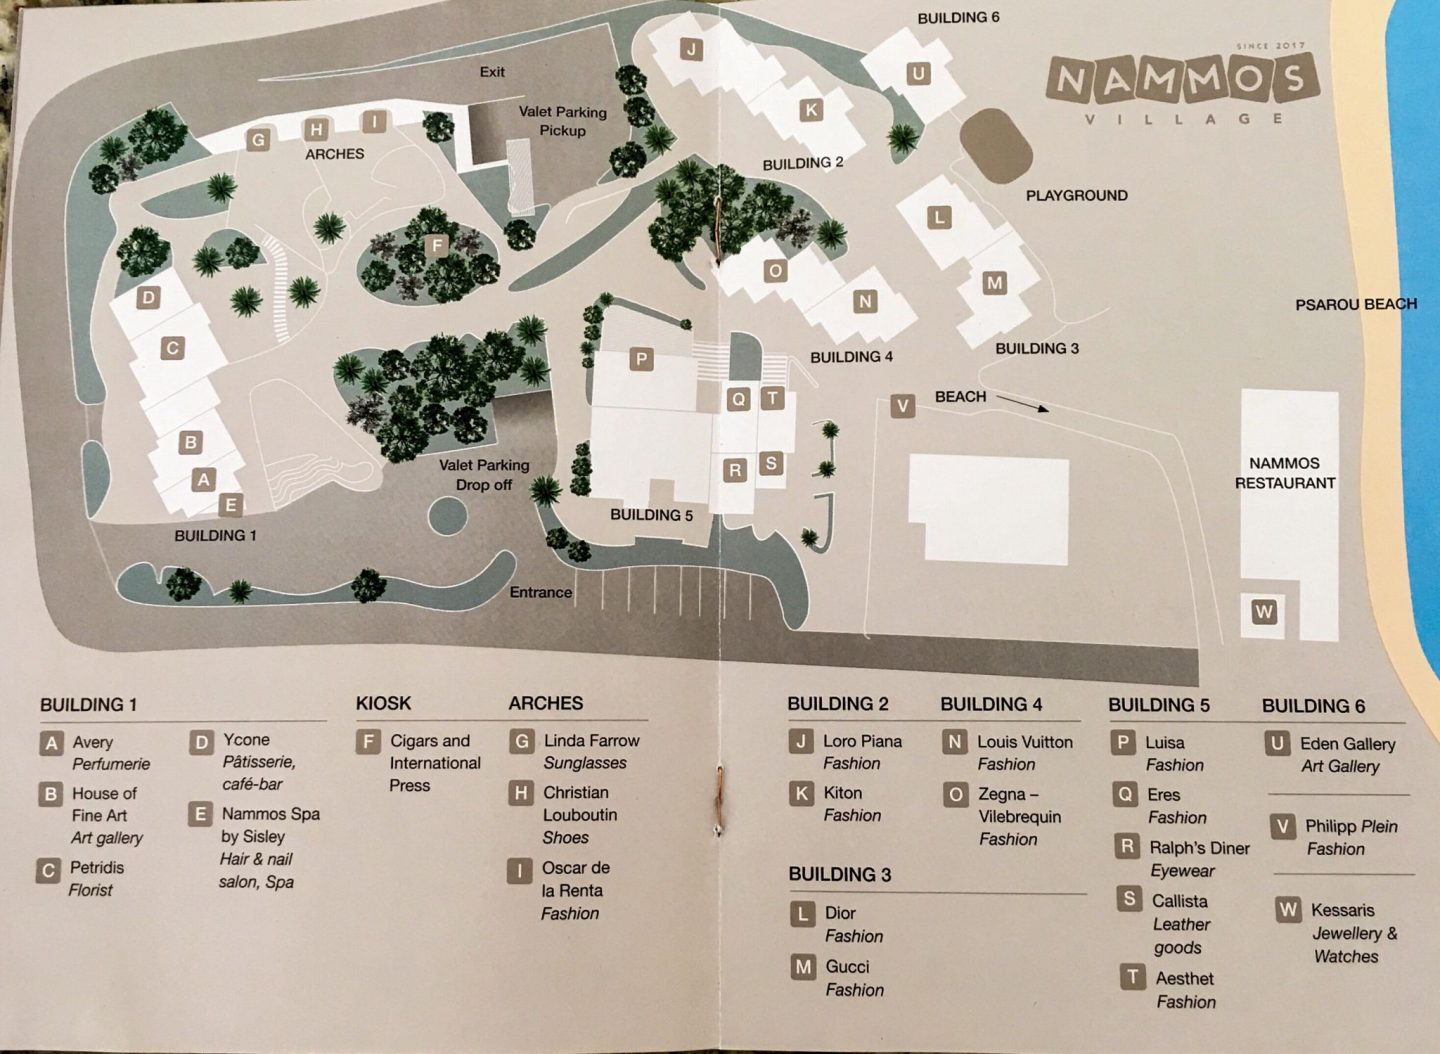 NAMMOS VILLAGE MAP